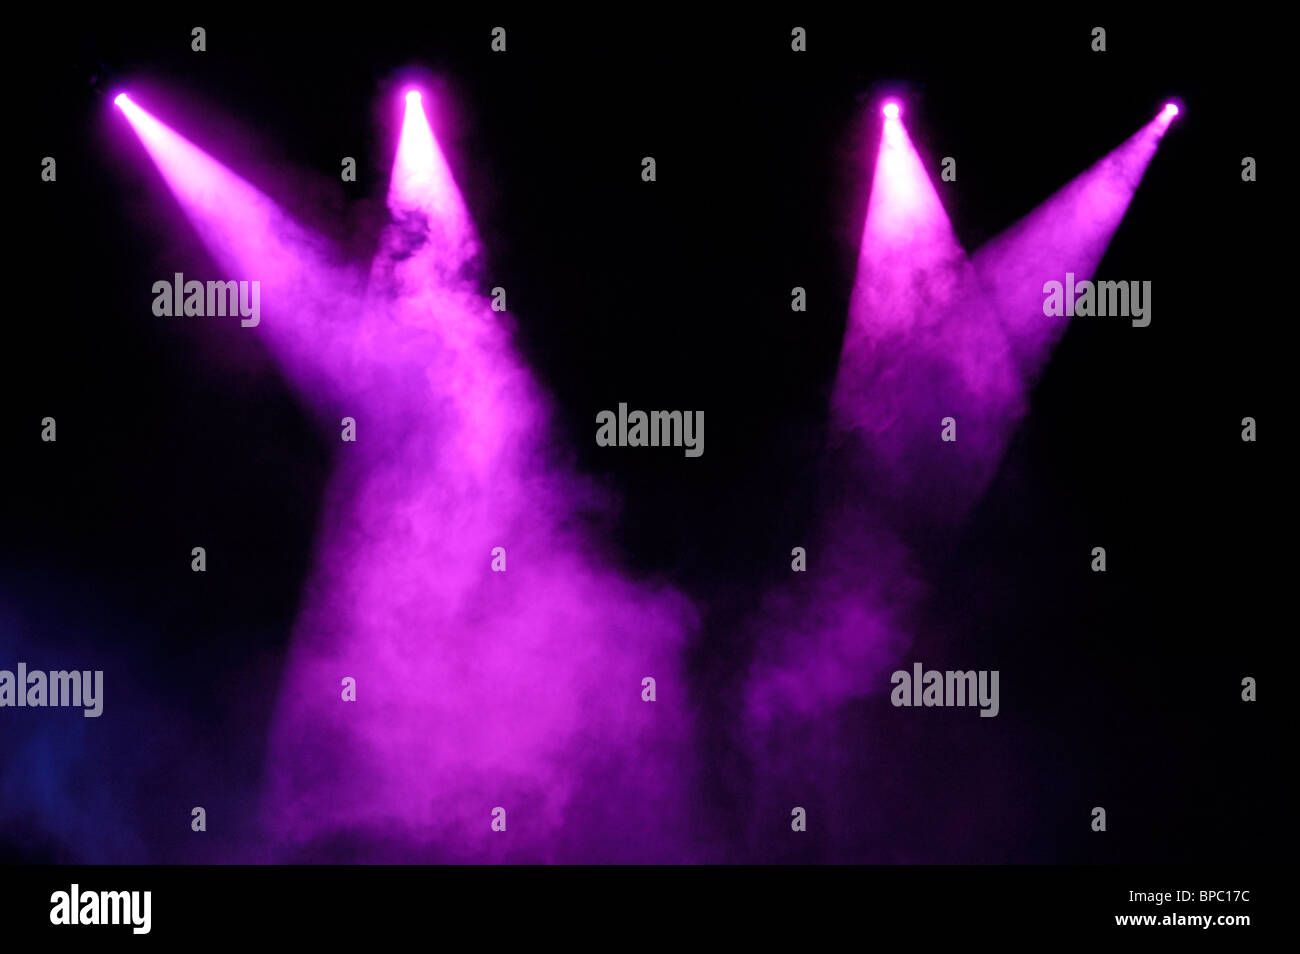 Purple stage spotlights in smoke over black background - Stock Image